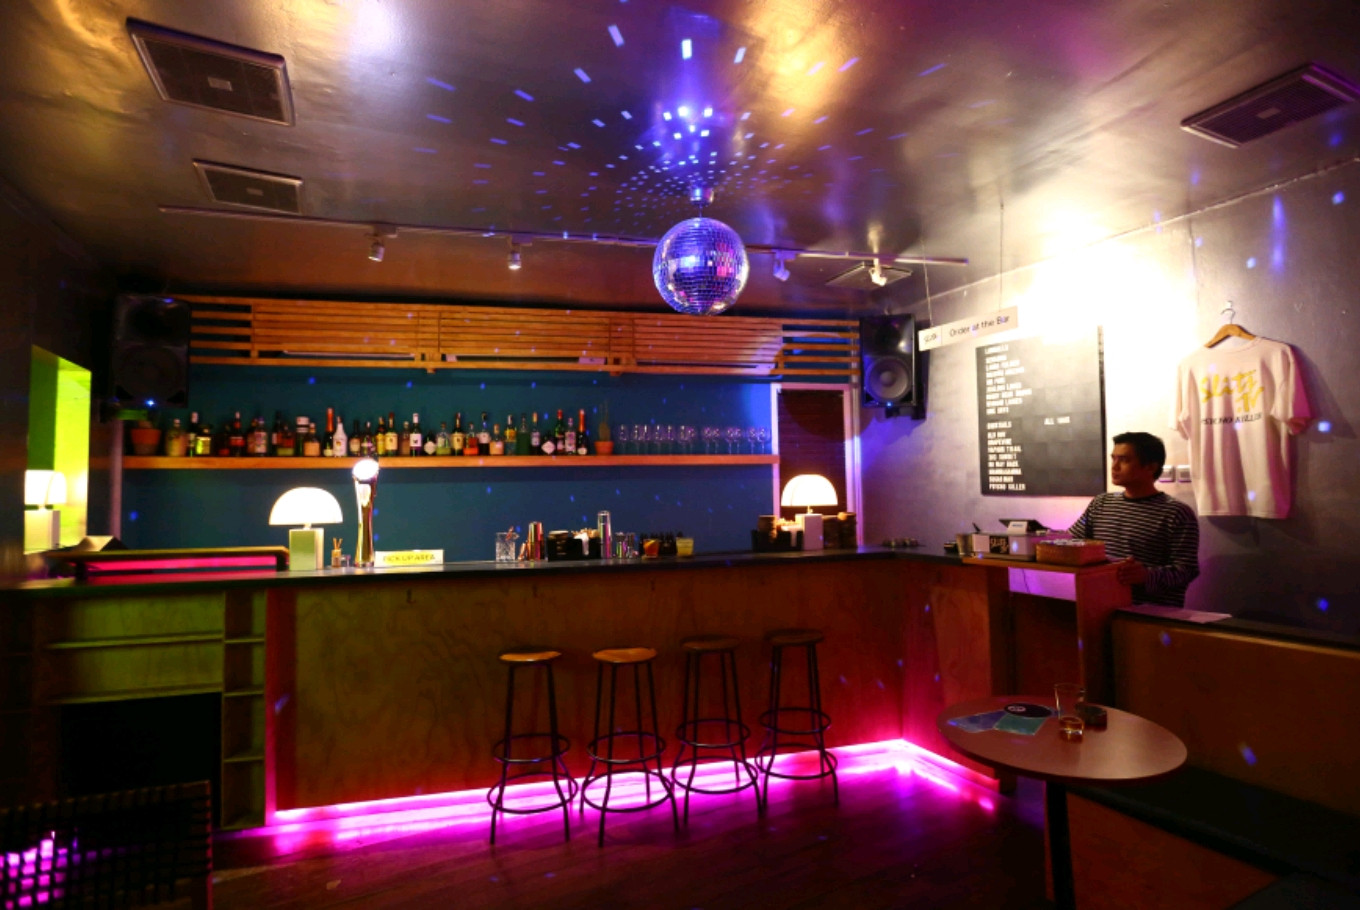 Jakpost nightlife: Hottest bars in South Jakarta